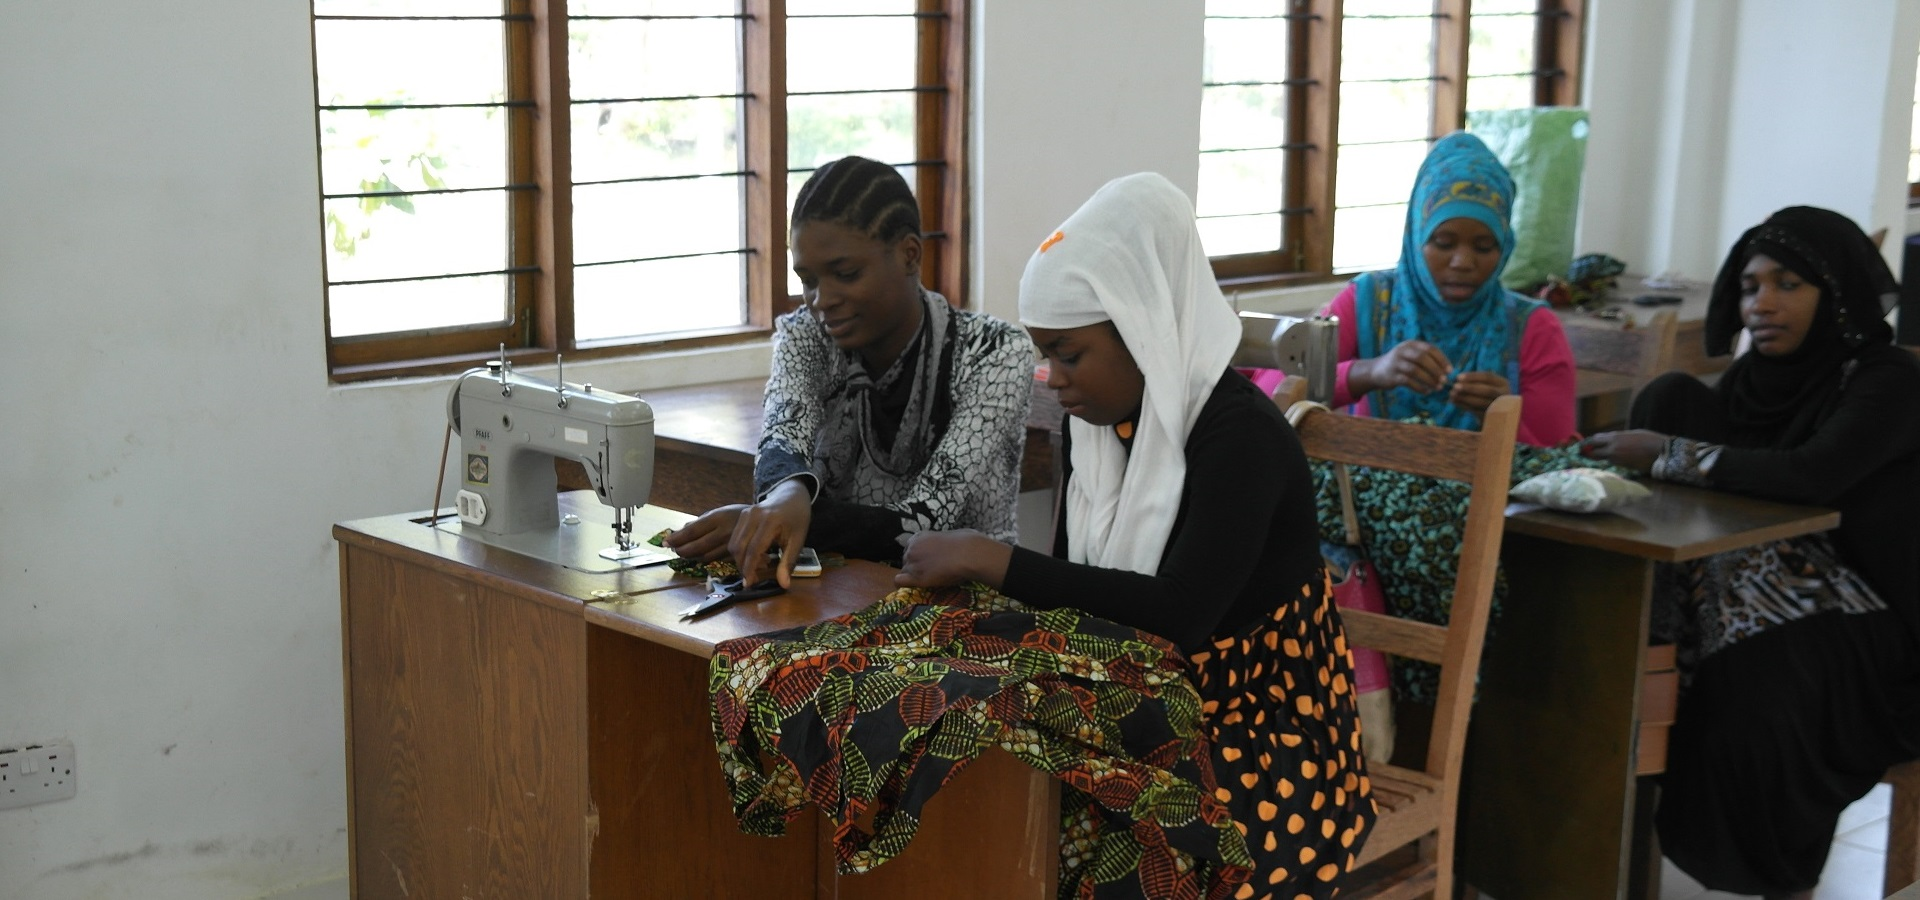 Empowering the women of Zanzibar